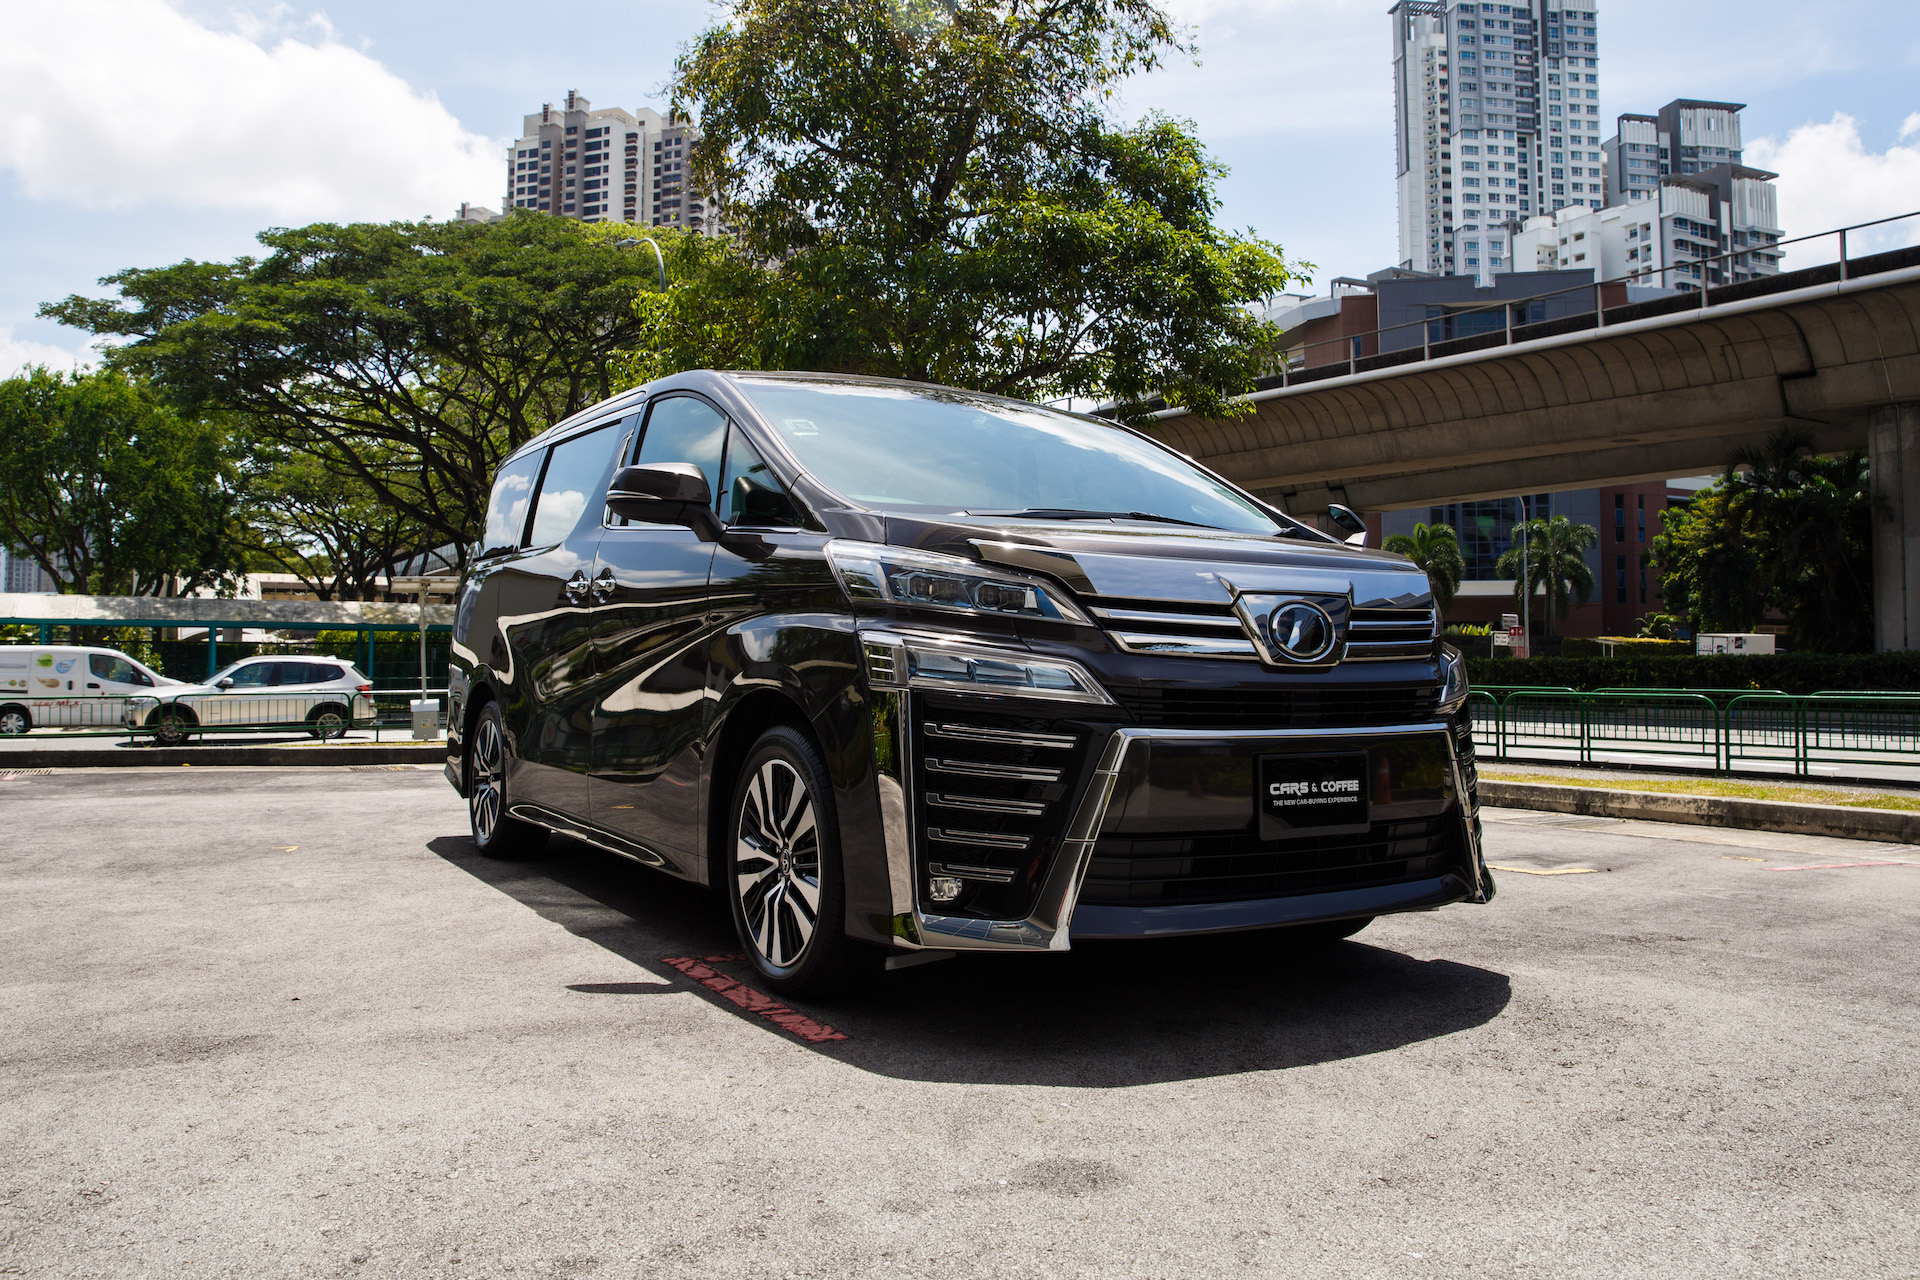 Certified Pre-Owned Toyota Vellfire 2.5A Z G-Edition | Cars and Coffee Singapore